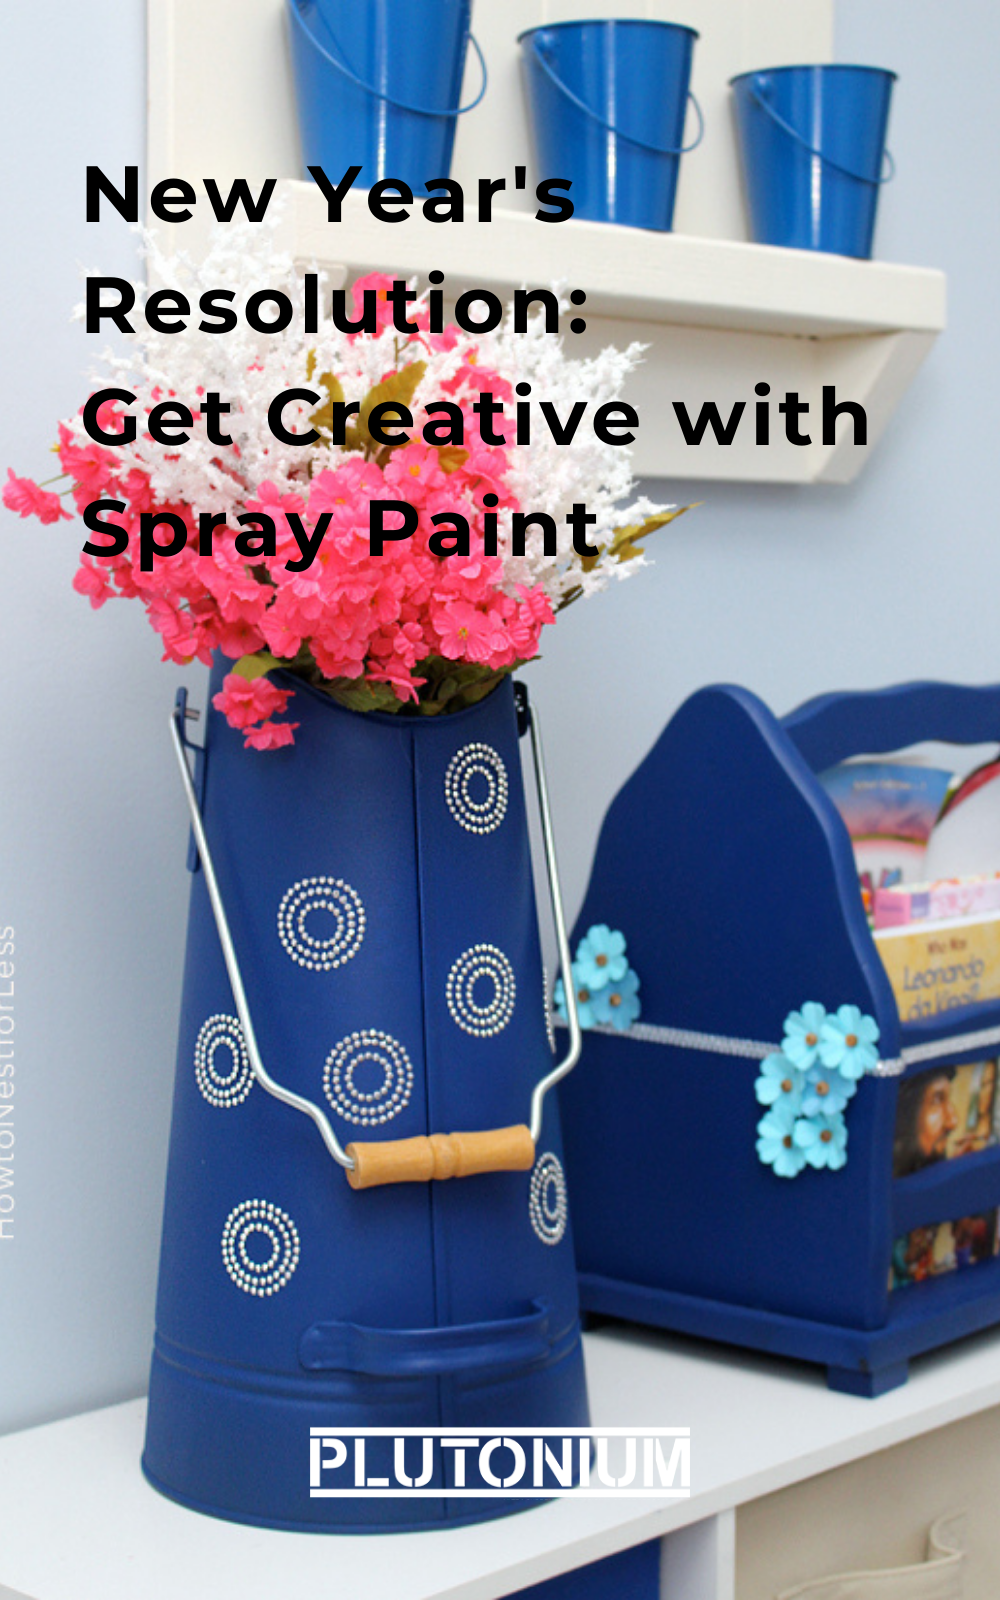 Is Get Creative one of your New Year's Resolutions? We have some inspiration for you. Grab a thrift store find and a bottle of spray paint and try one of these spray paint projects